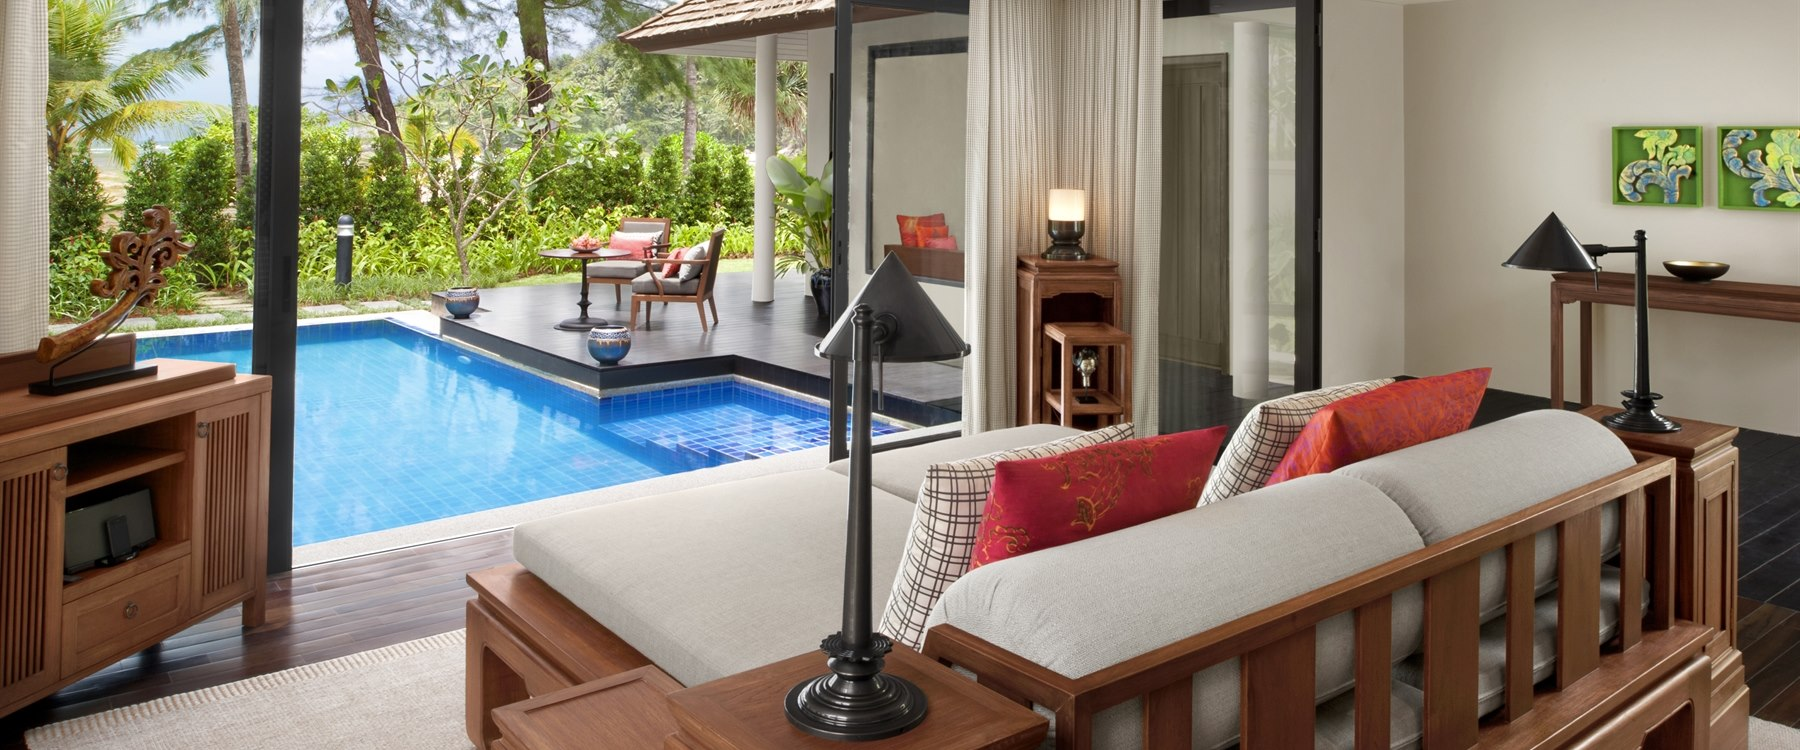 Beachfront Pool Villa Living Room at Anantara Layan Phuket Resort, Thailand